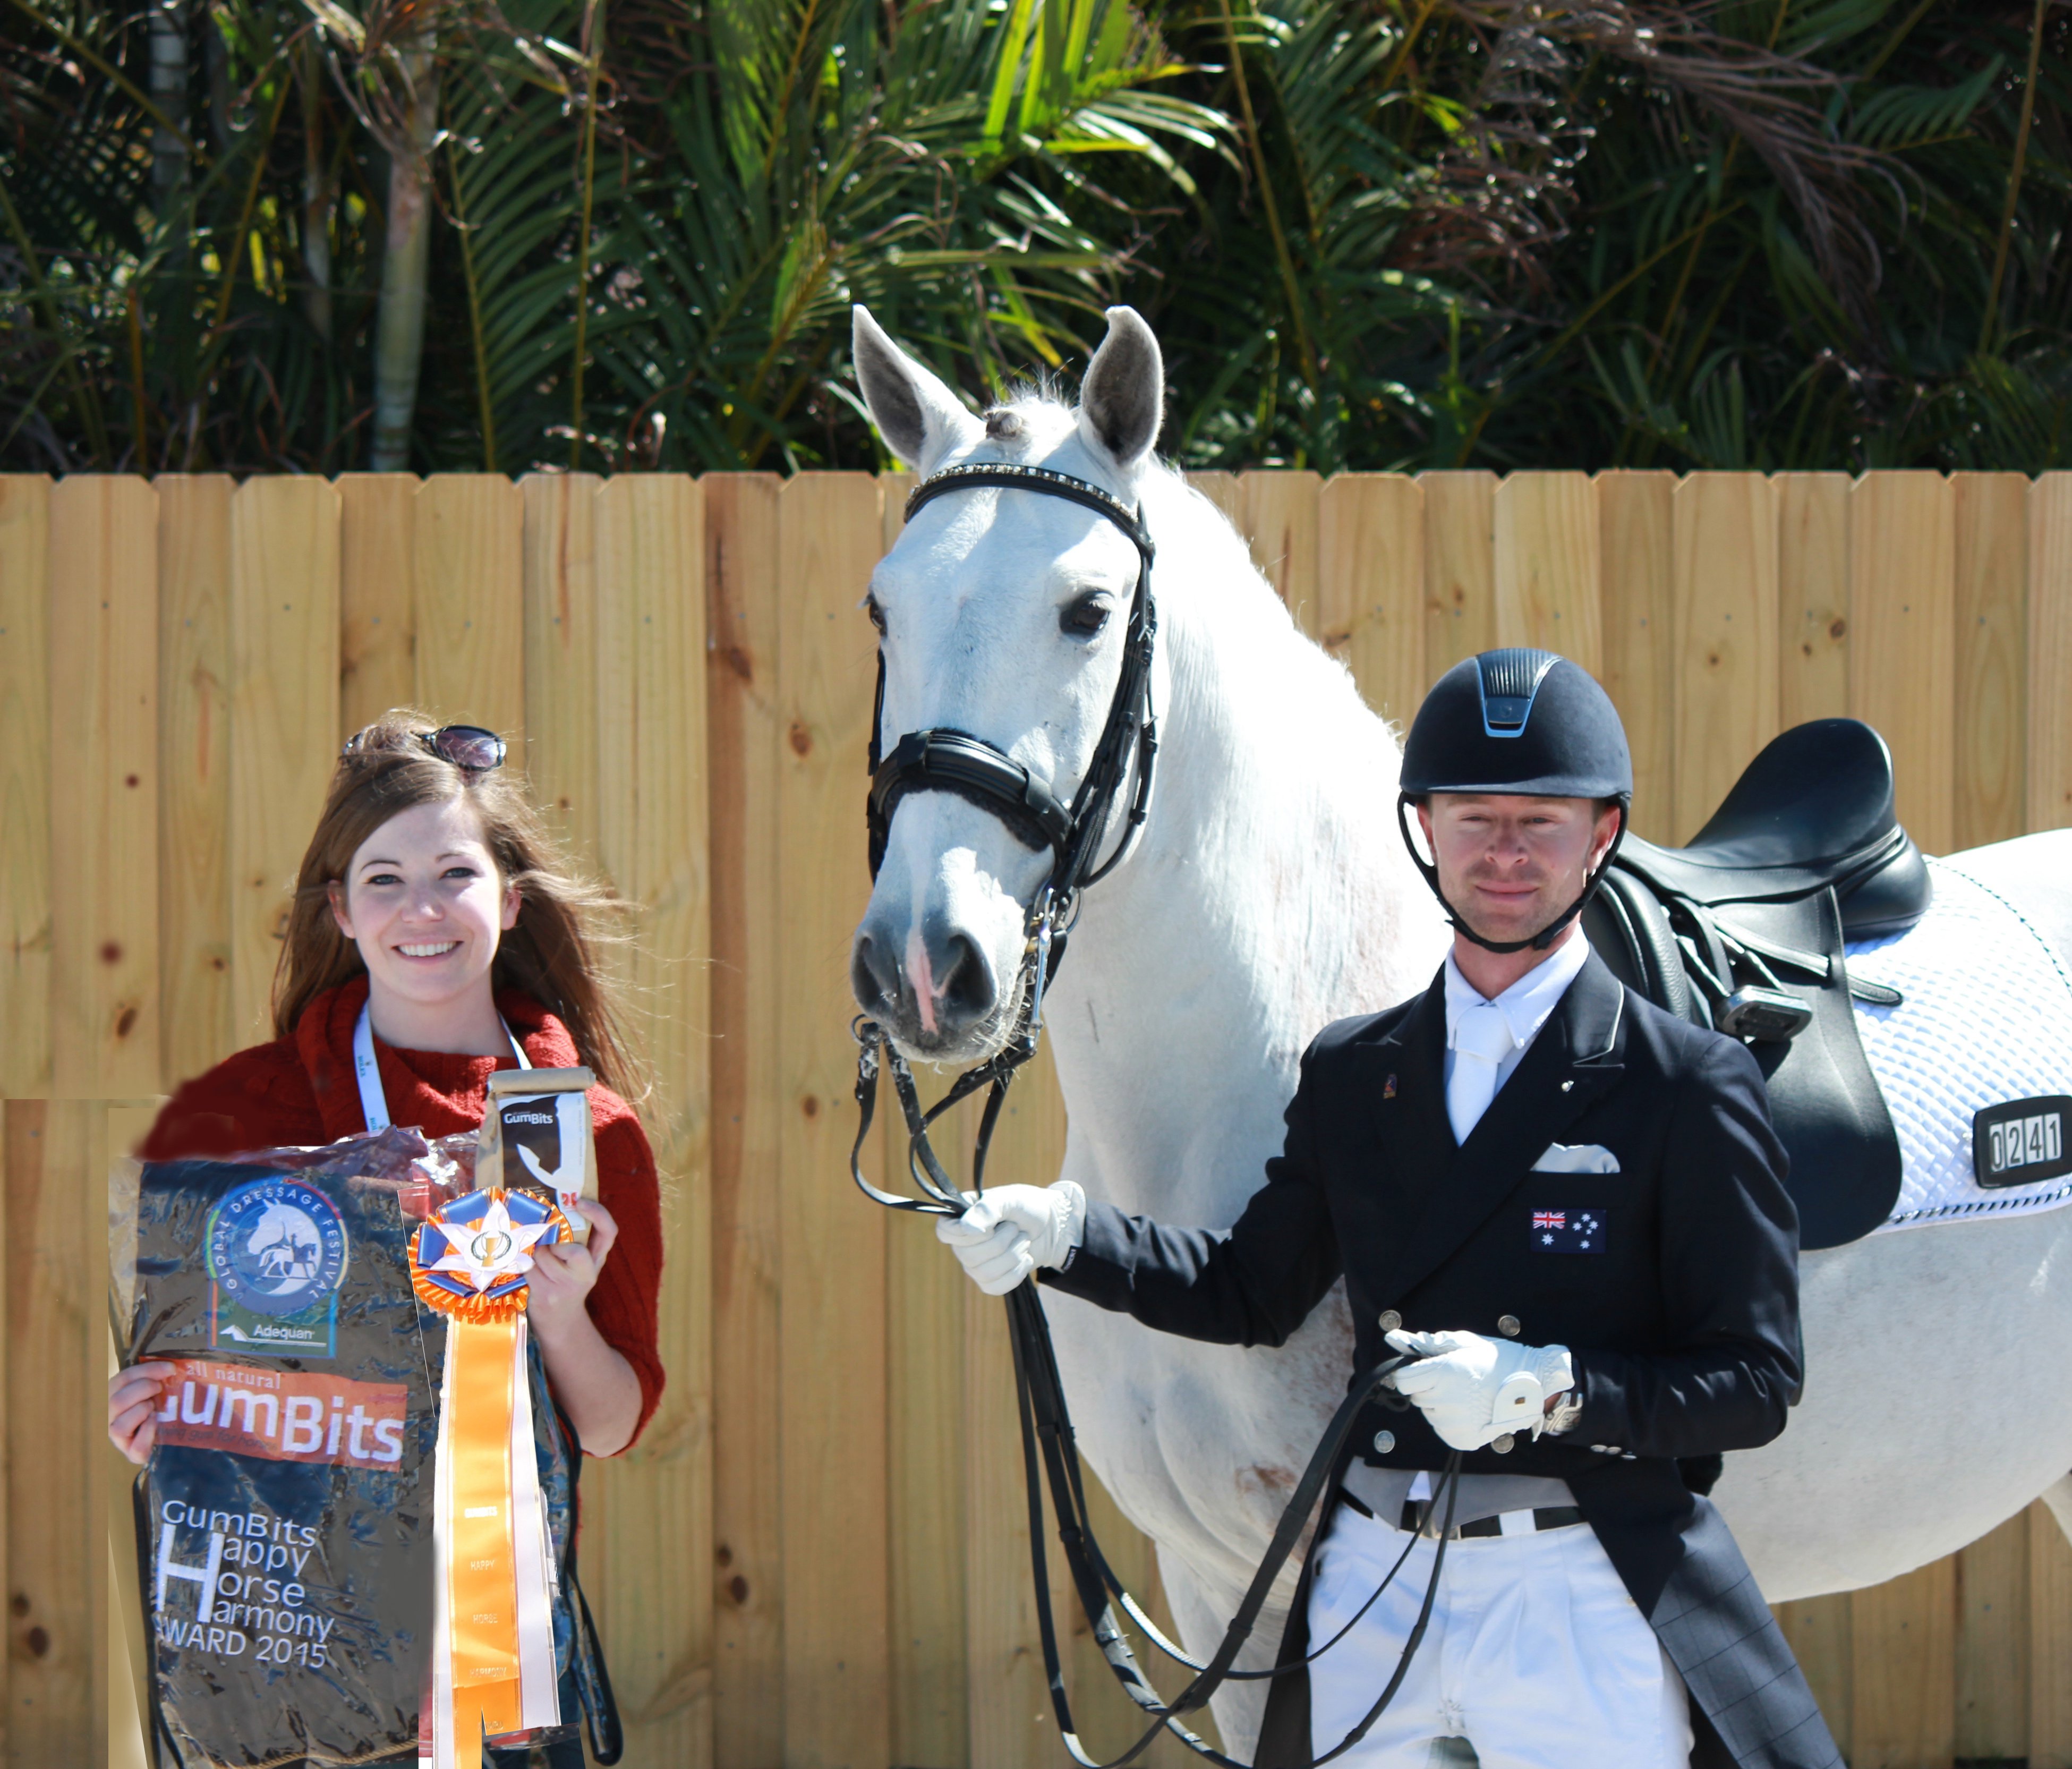 Great teamwork earns Nicholas Fyffe (right) and Banzai LS the GumBits Happy Horse Harmony Award. (Photo courtesy of JRPR)